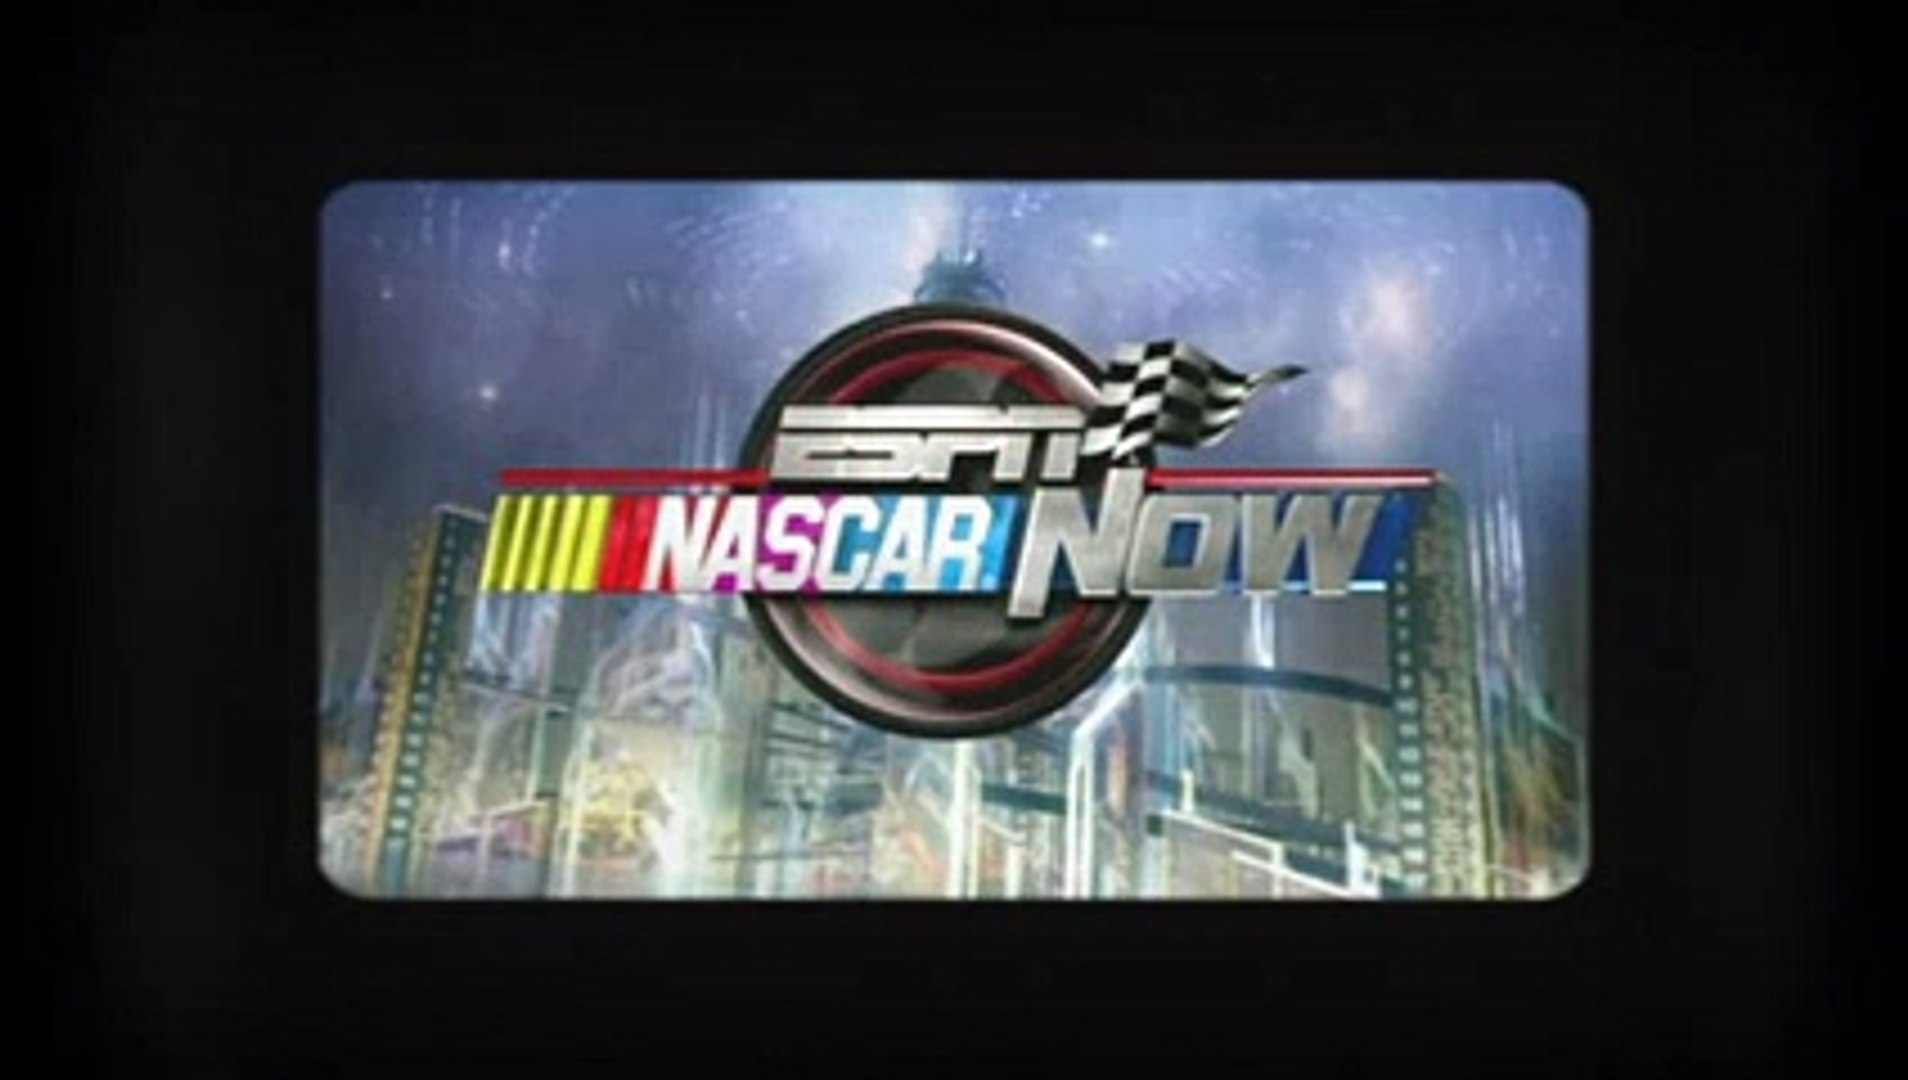 How to watch nascar highlights las vegas - las vegas highlights nascar - las vegas race highlights